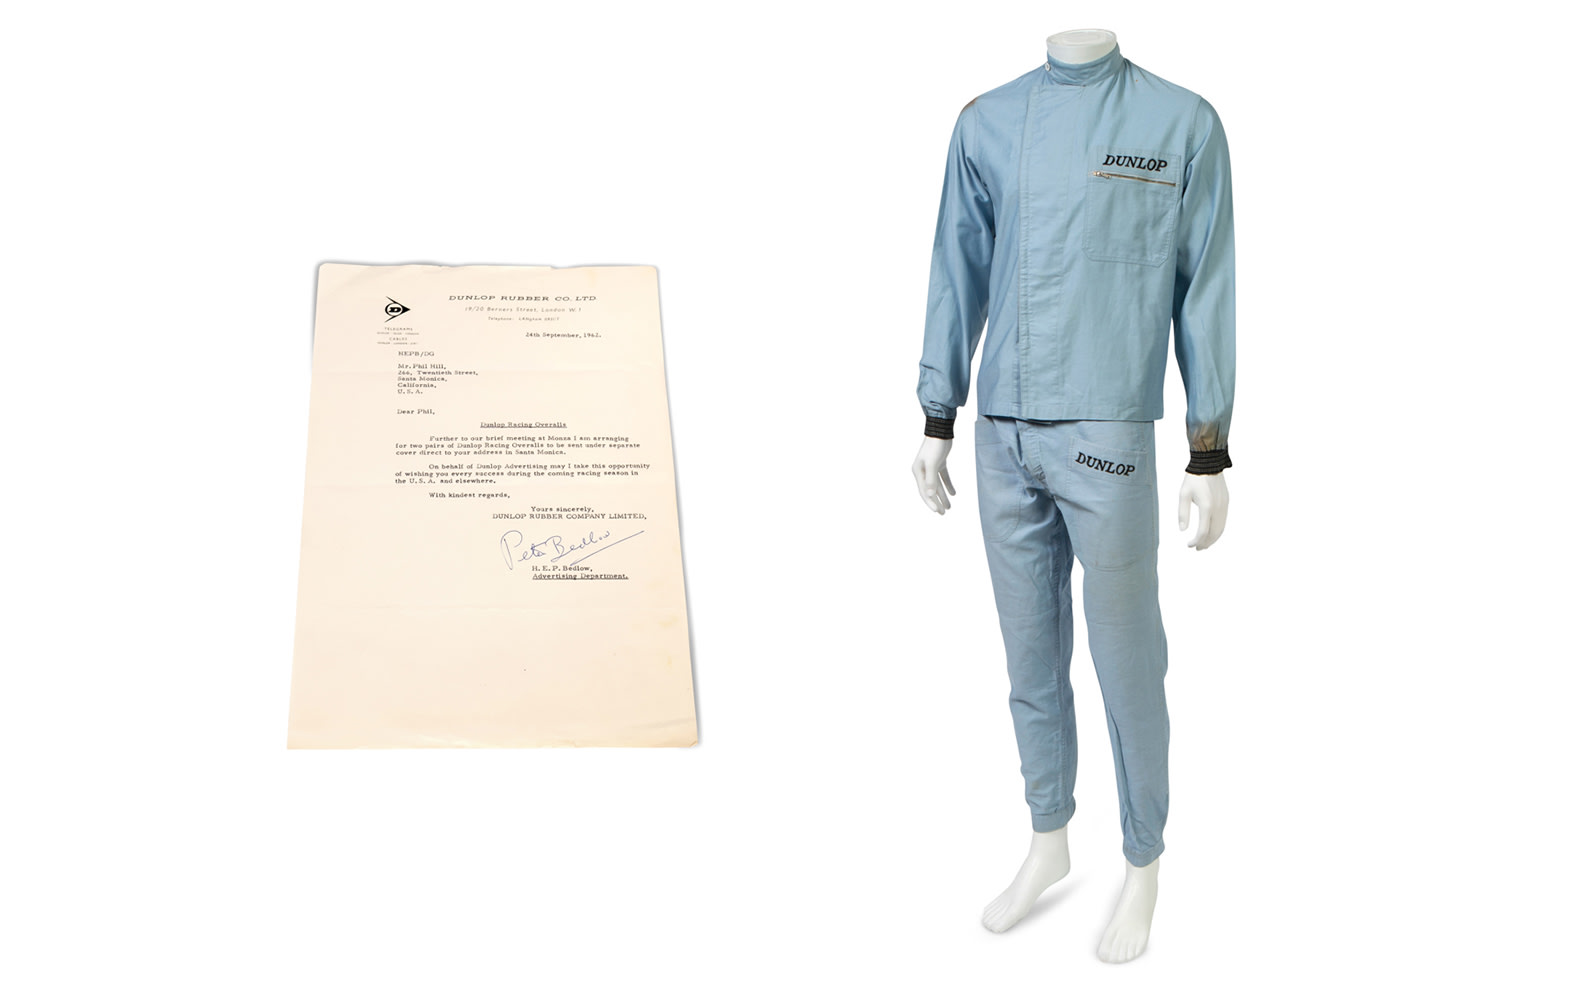 Two-Piece Dunlop Driving Suit Worn by Phil Hill During his Racing Career